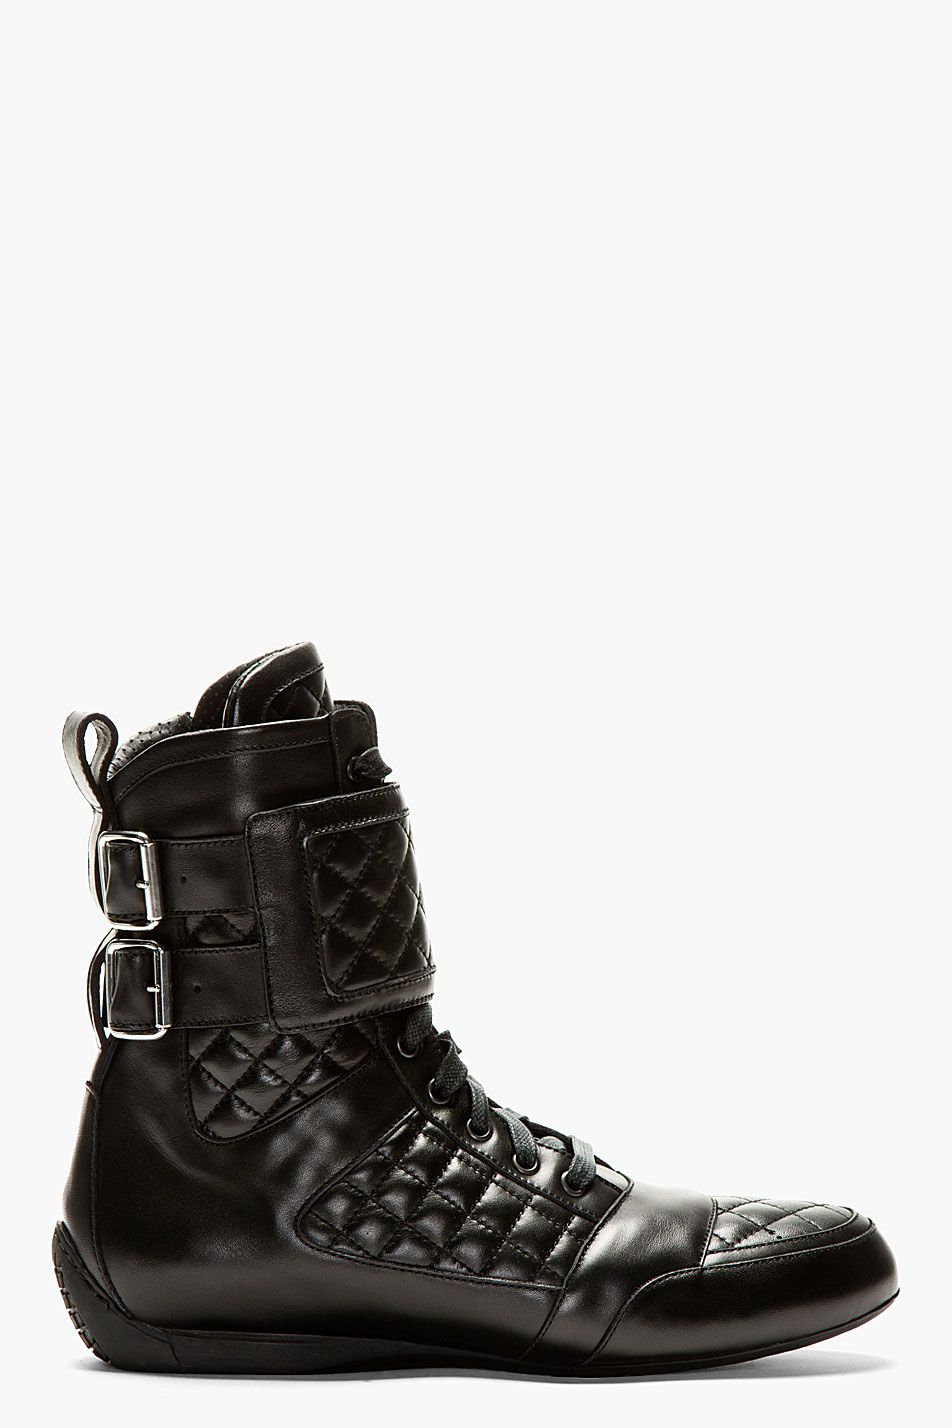 outlet store 3d07c 178b3 BALMAIN Black Quilted Leather High Top Sneakers Smart Casual Footwear, High  Top Sneakers, Shoes